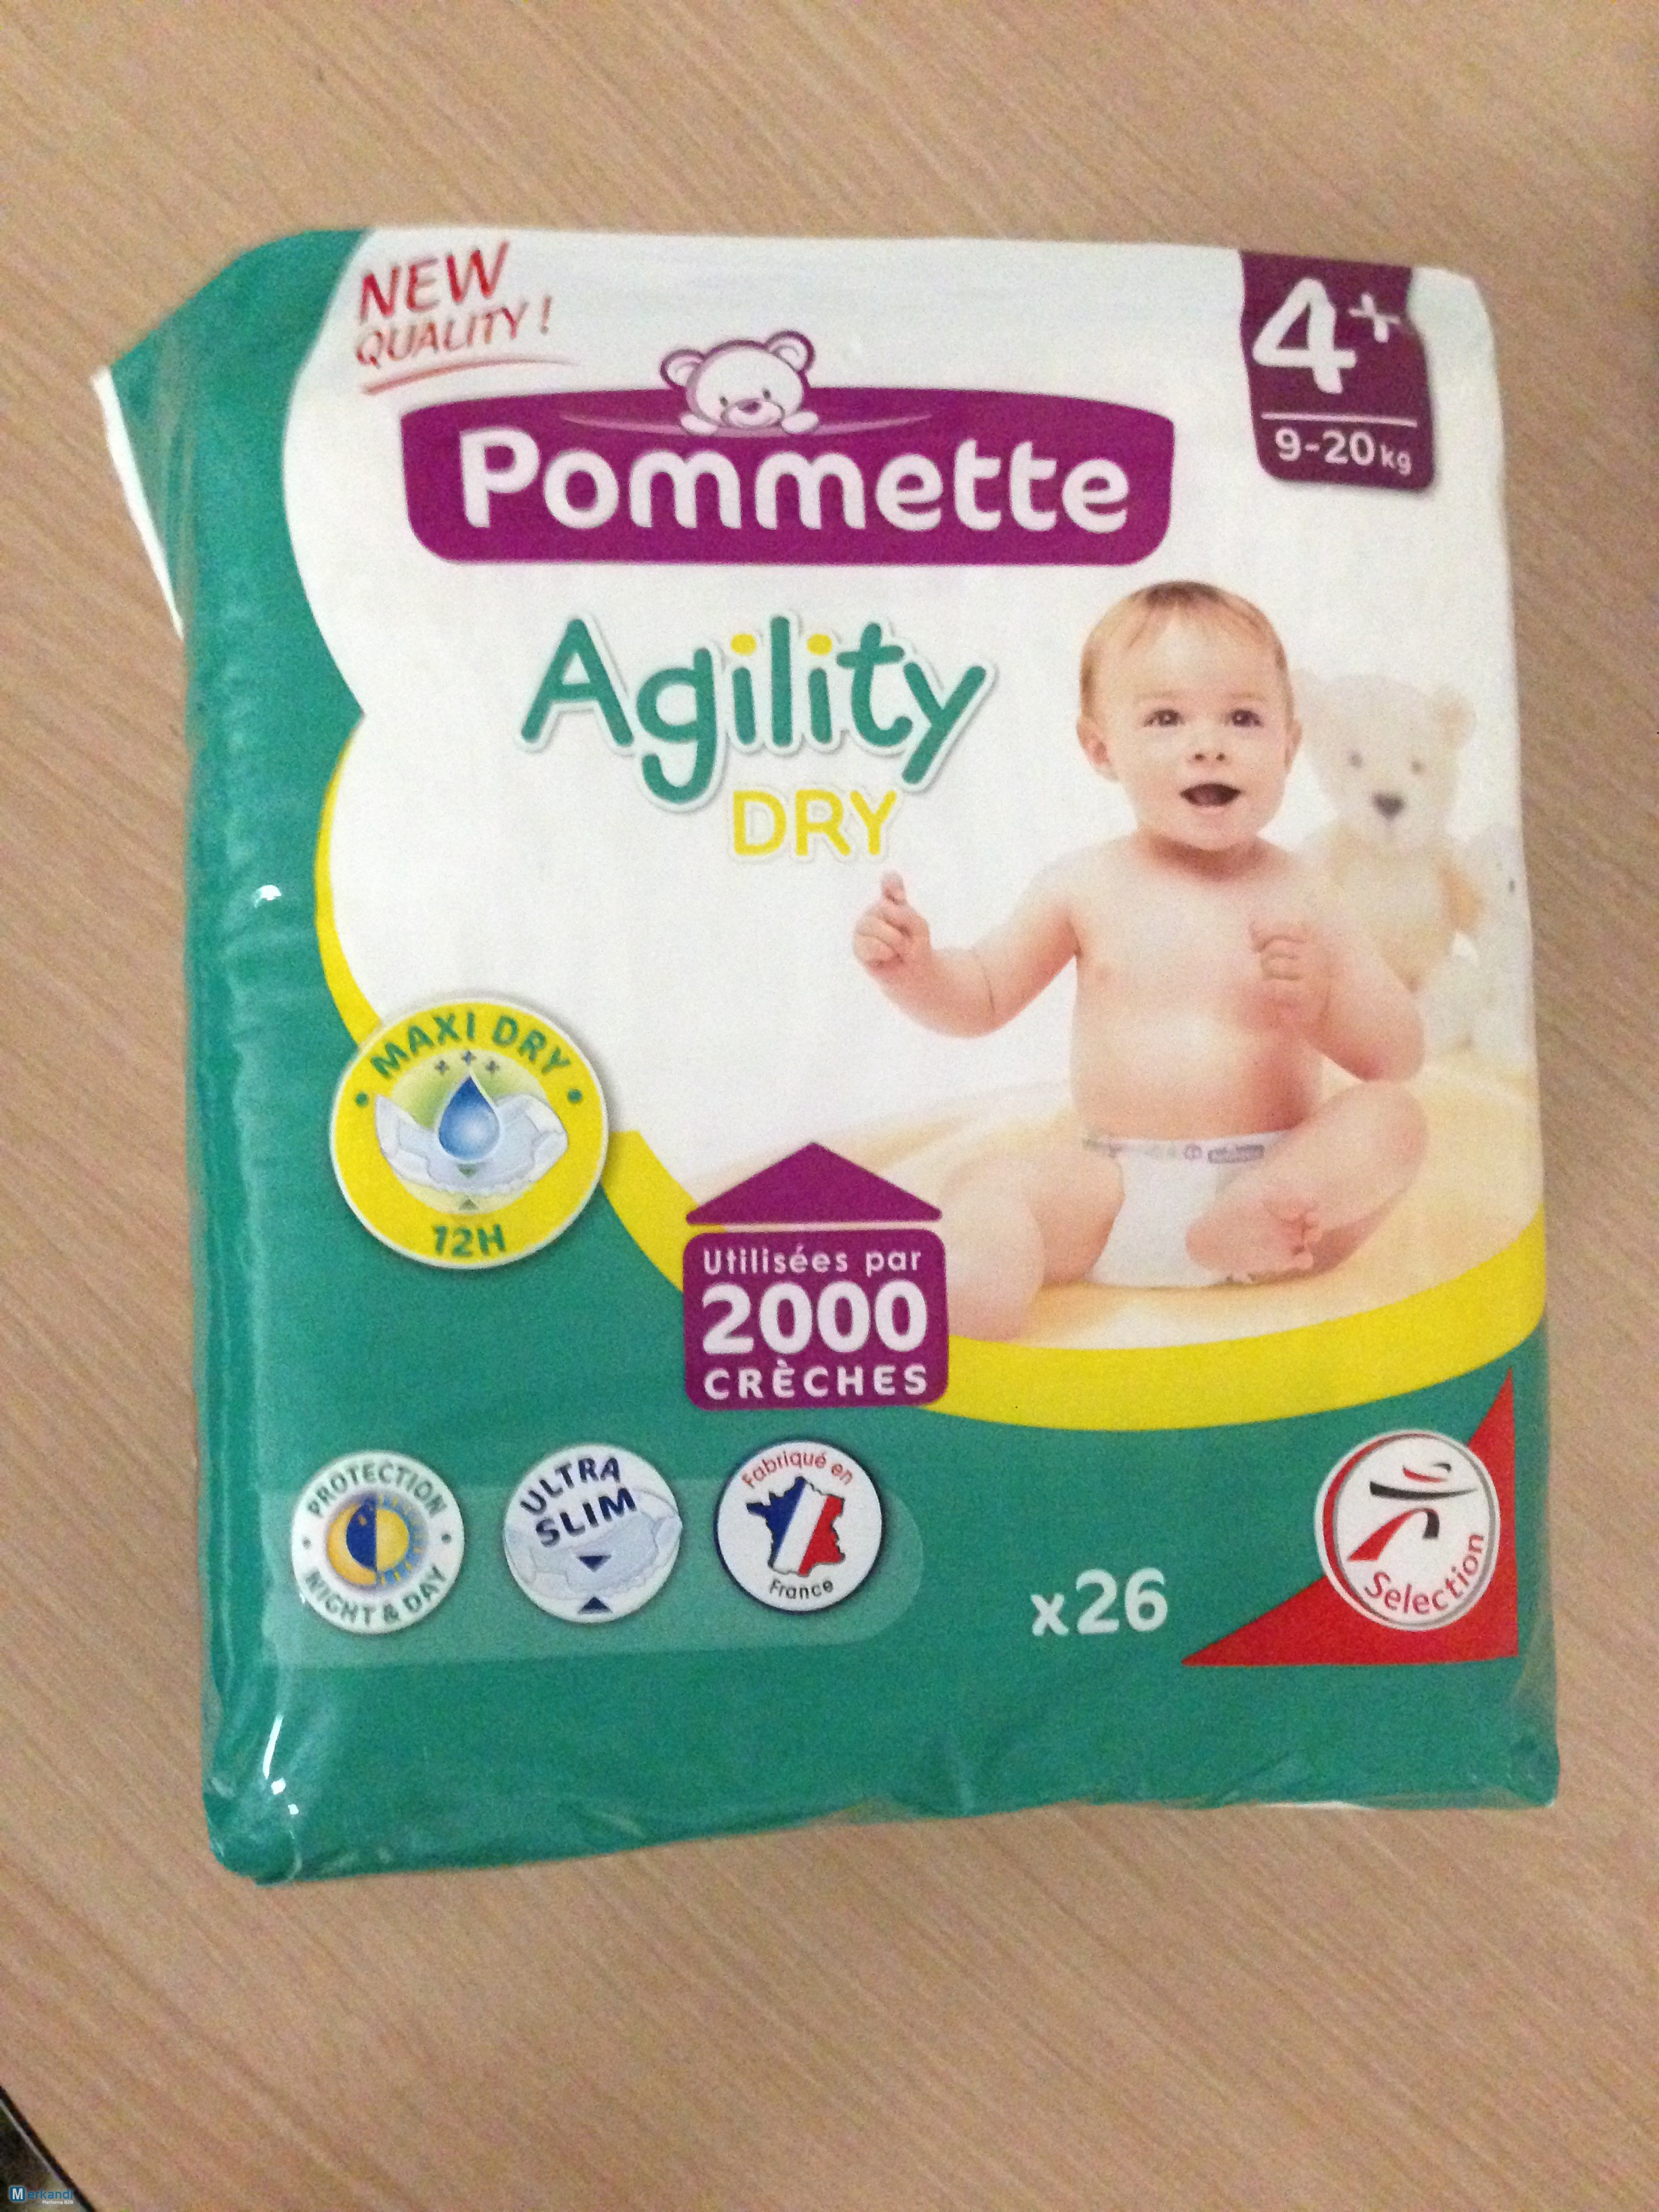 Baby Diapers Pommette Nursery Products Official Archives Of